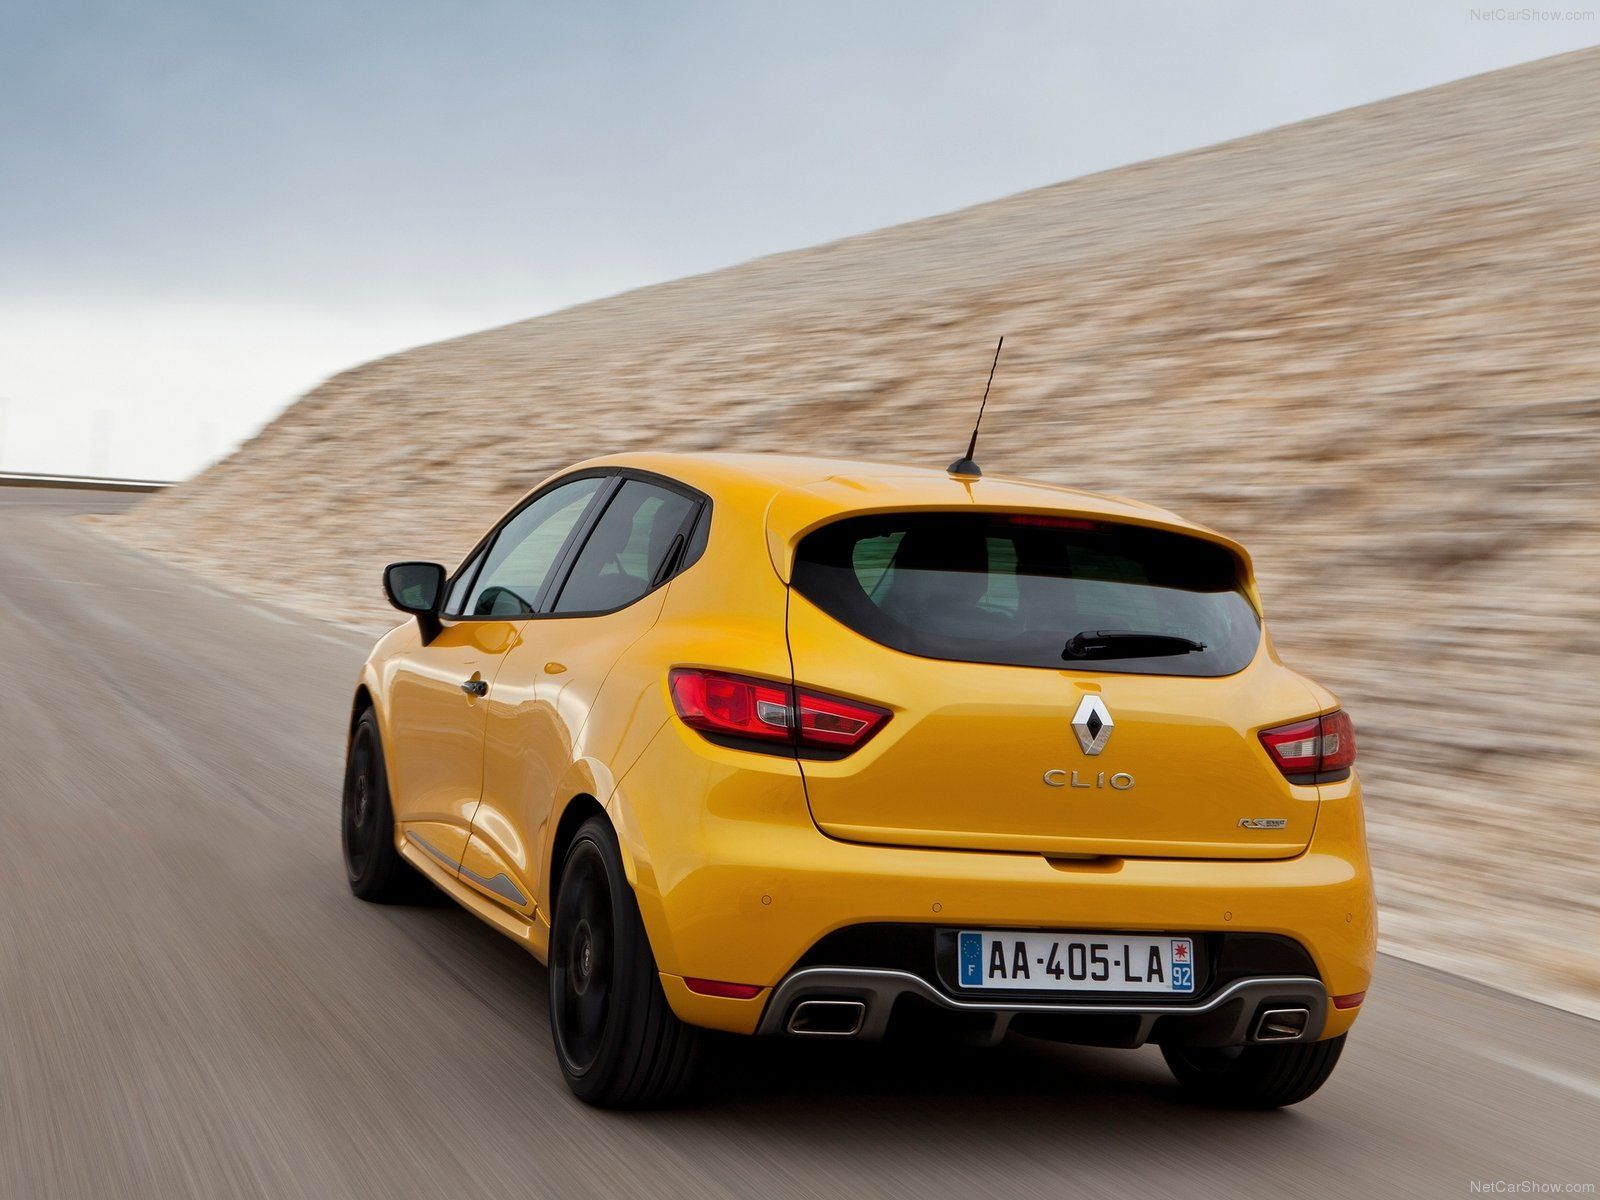 Renault Clio Gt Wallpaper For Sports Styling And Performance Look